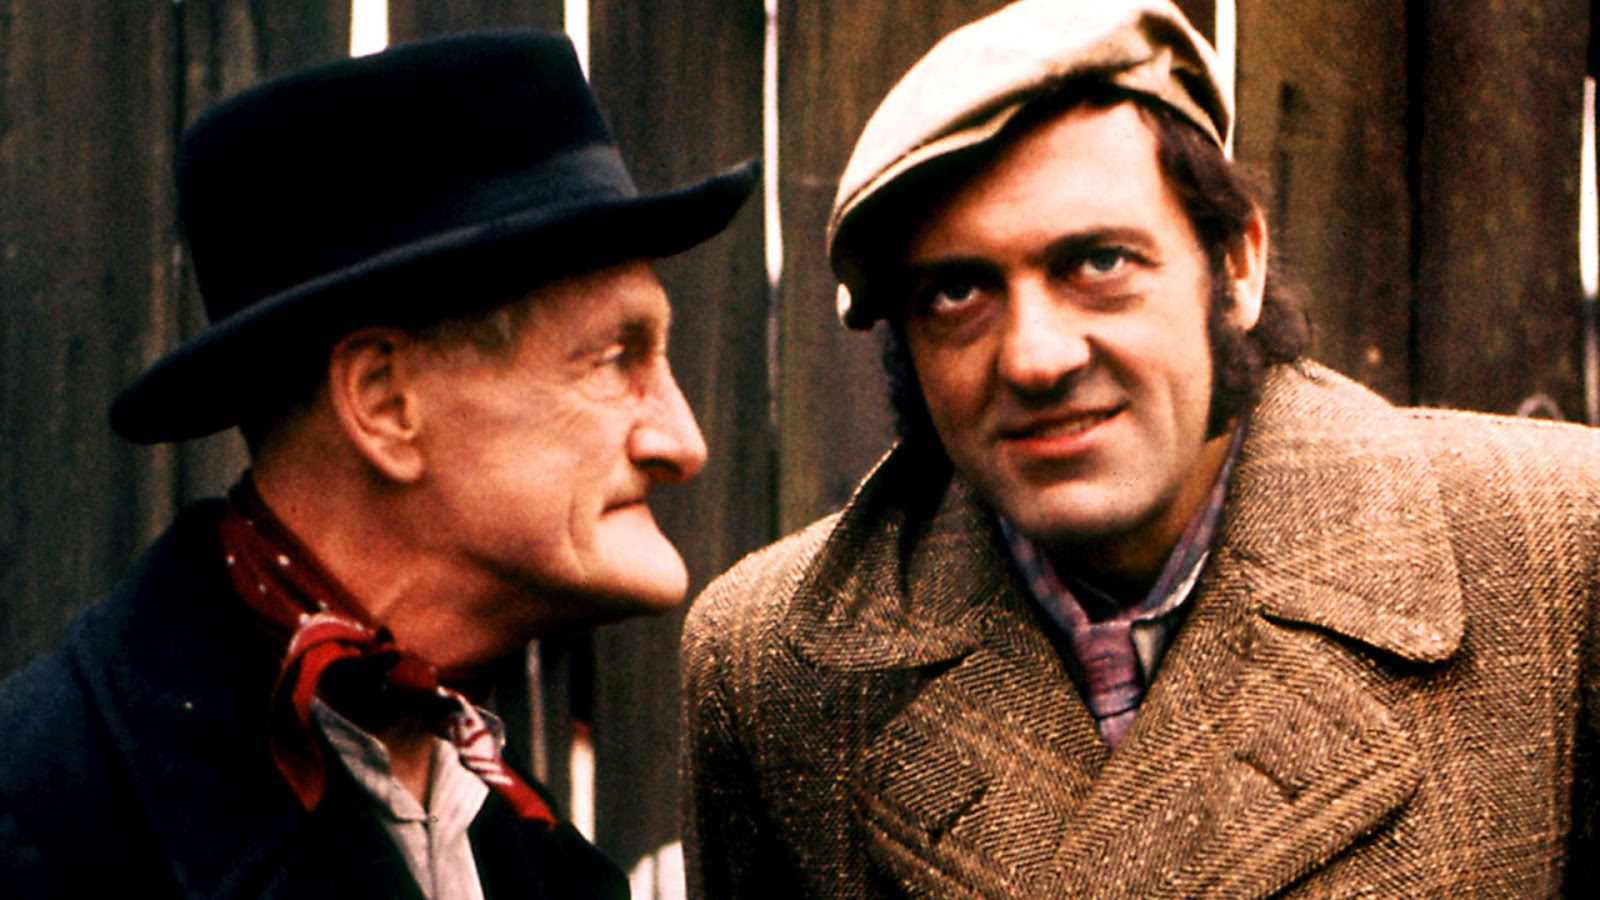 A still photograph showing Albert and Harold Steptoe